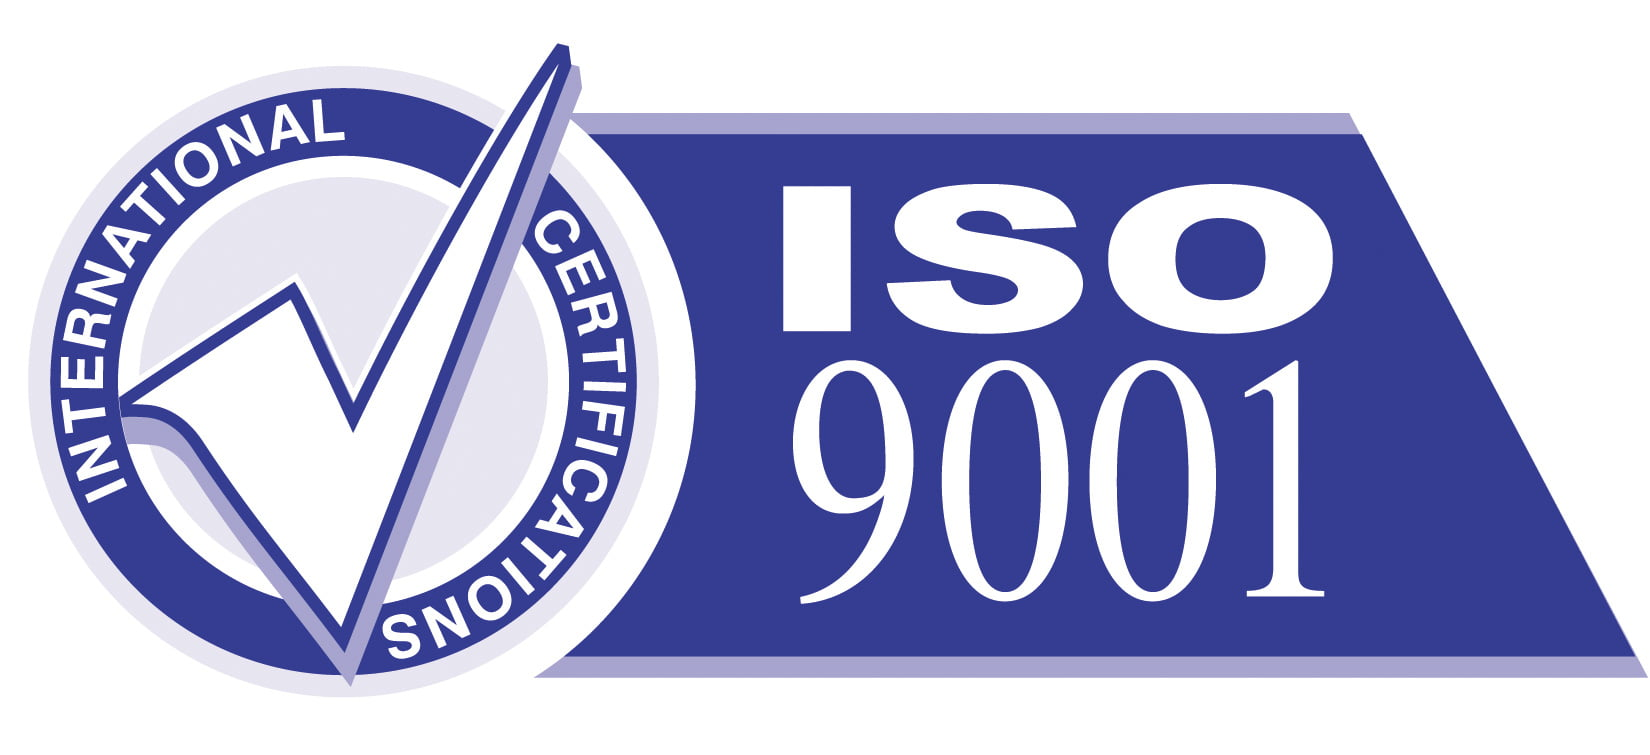 The SOGG Accredited As ISO 9001 Certified Company